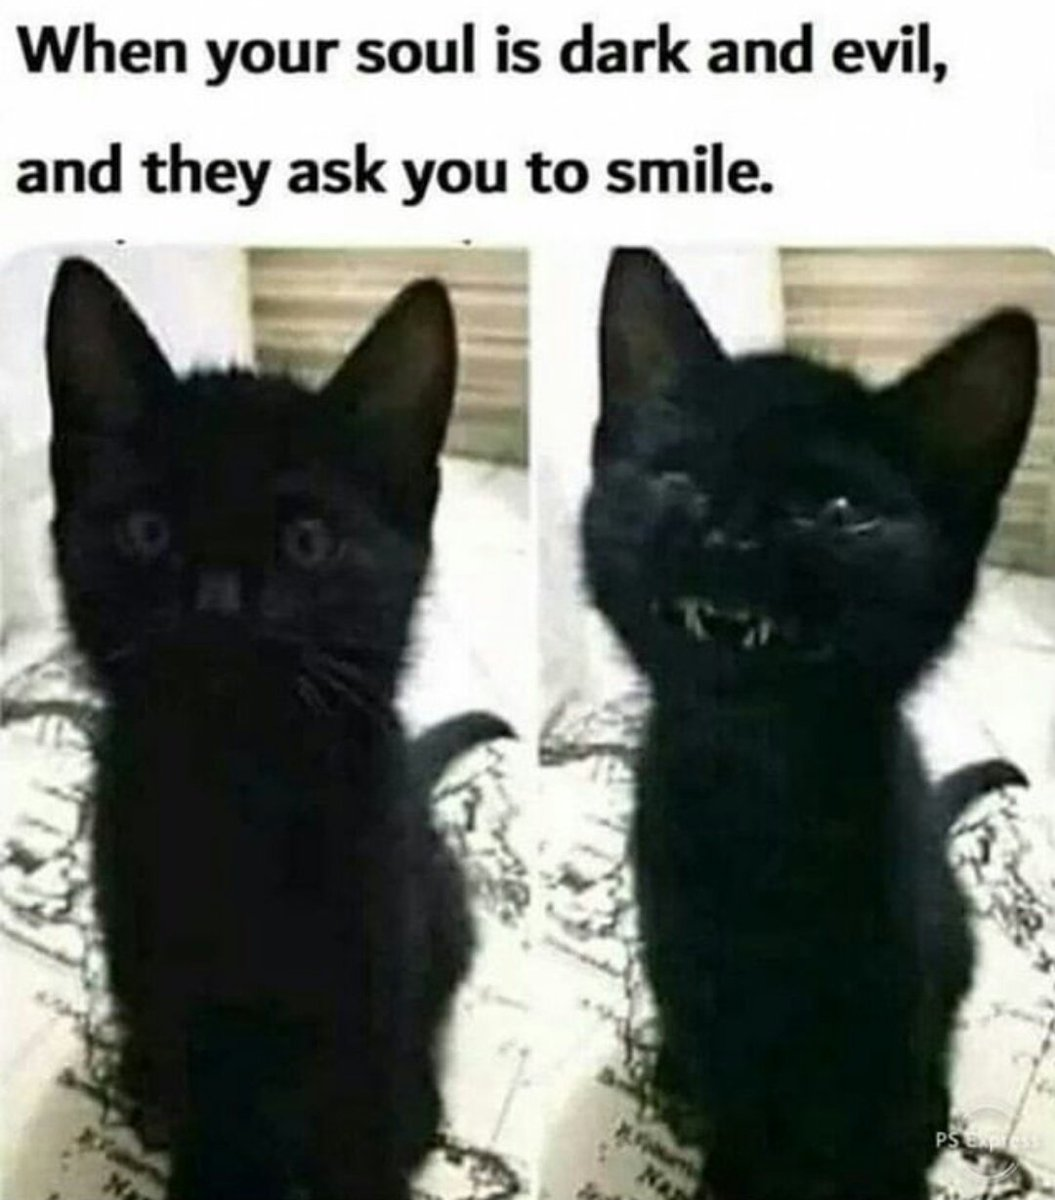 When your soul is dark and evil, and they ask you to smile.